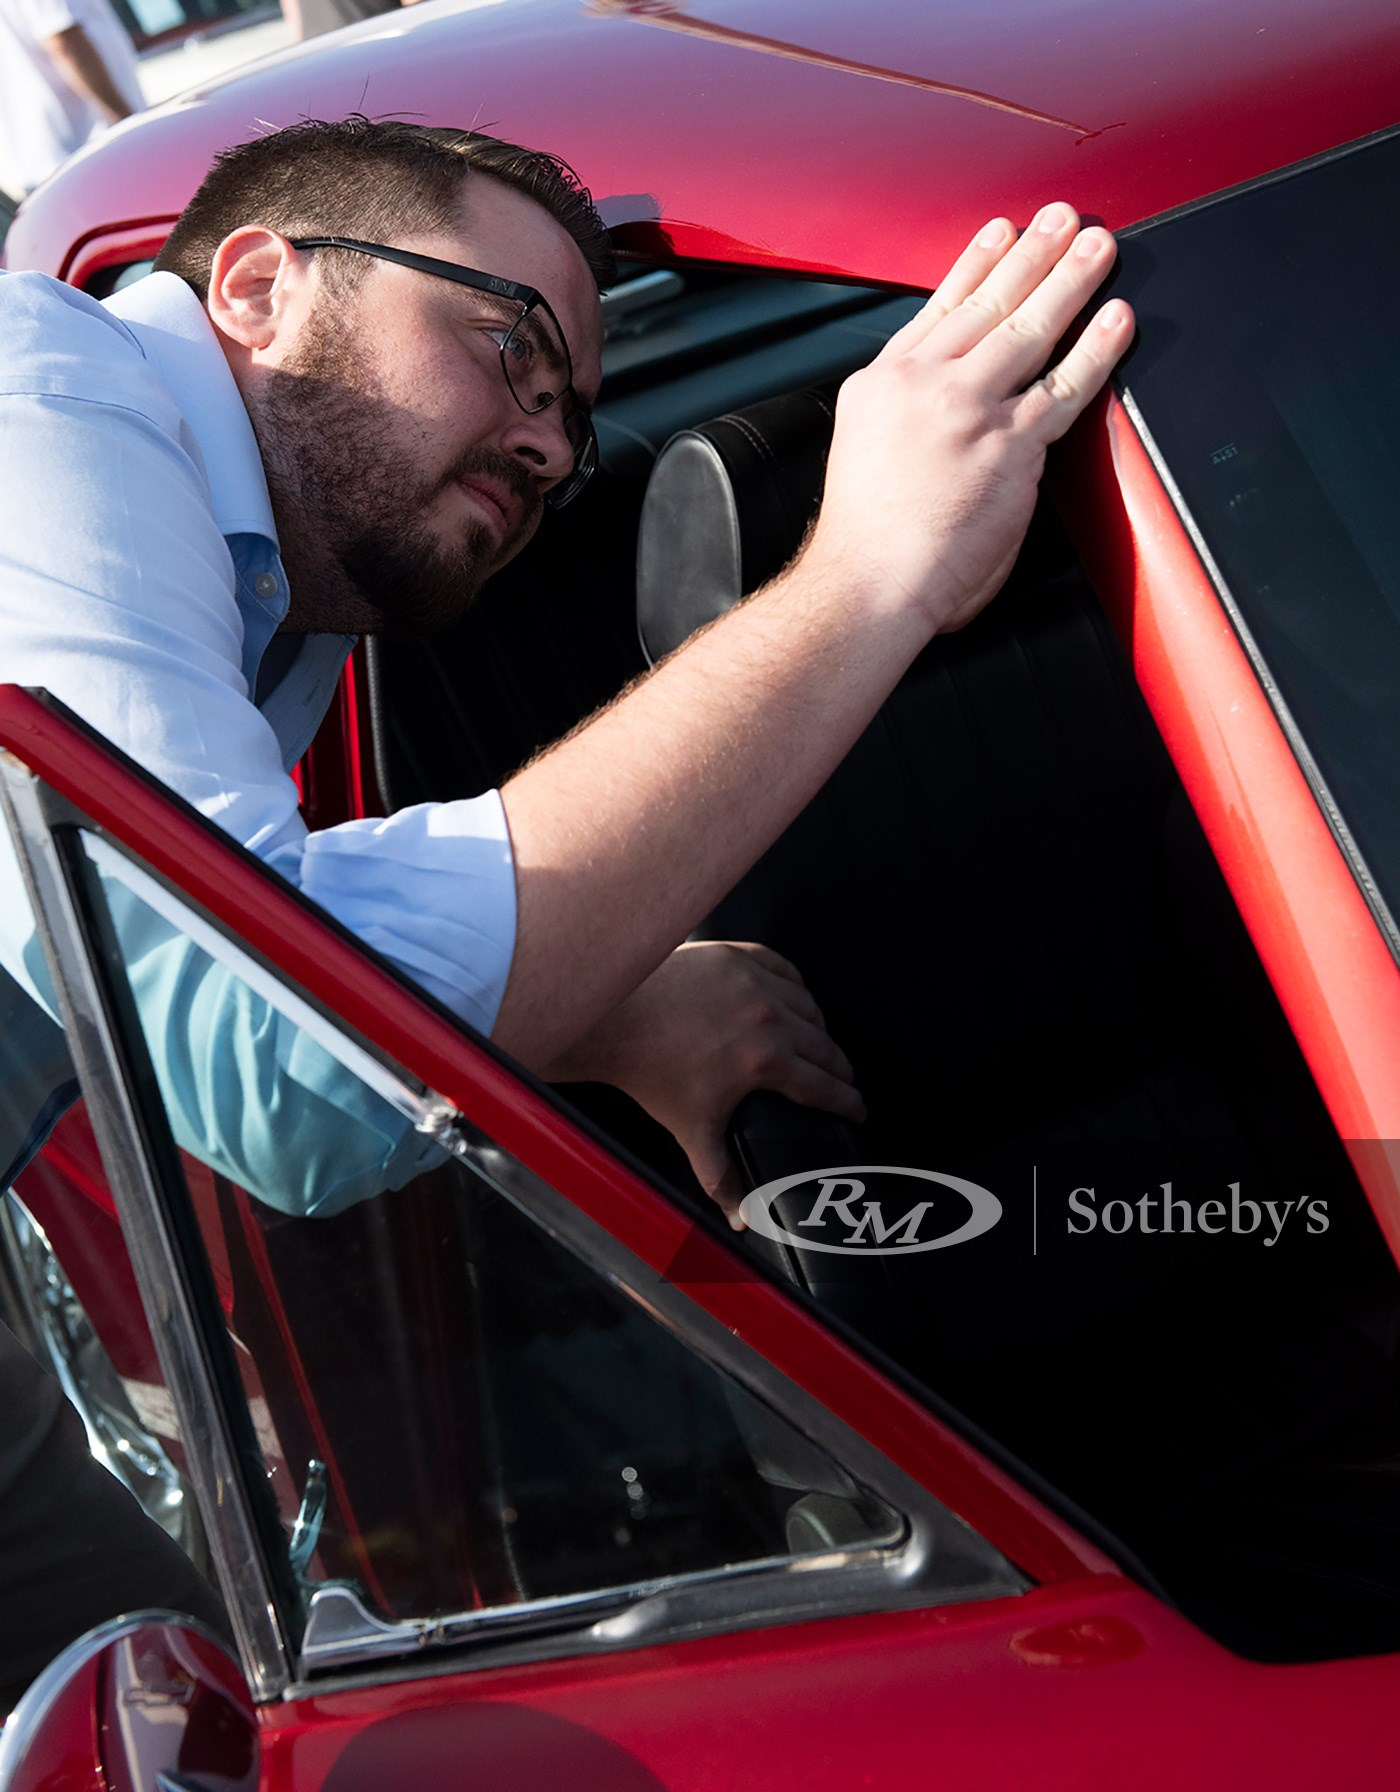 RM Sotheby's, Car Specialists